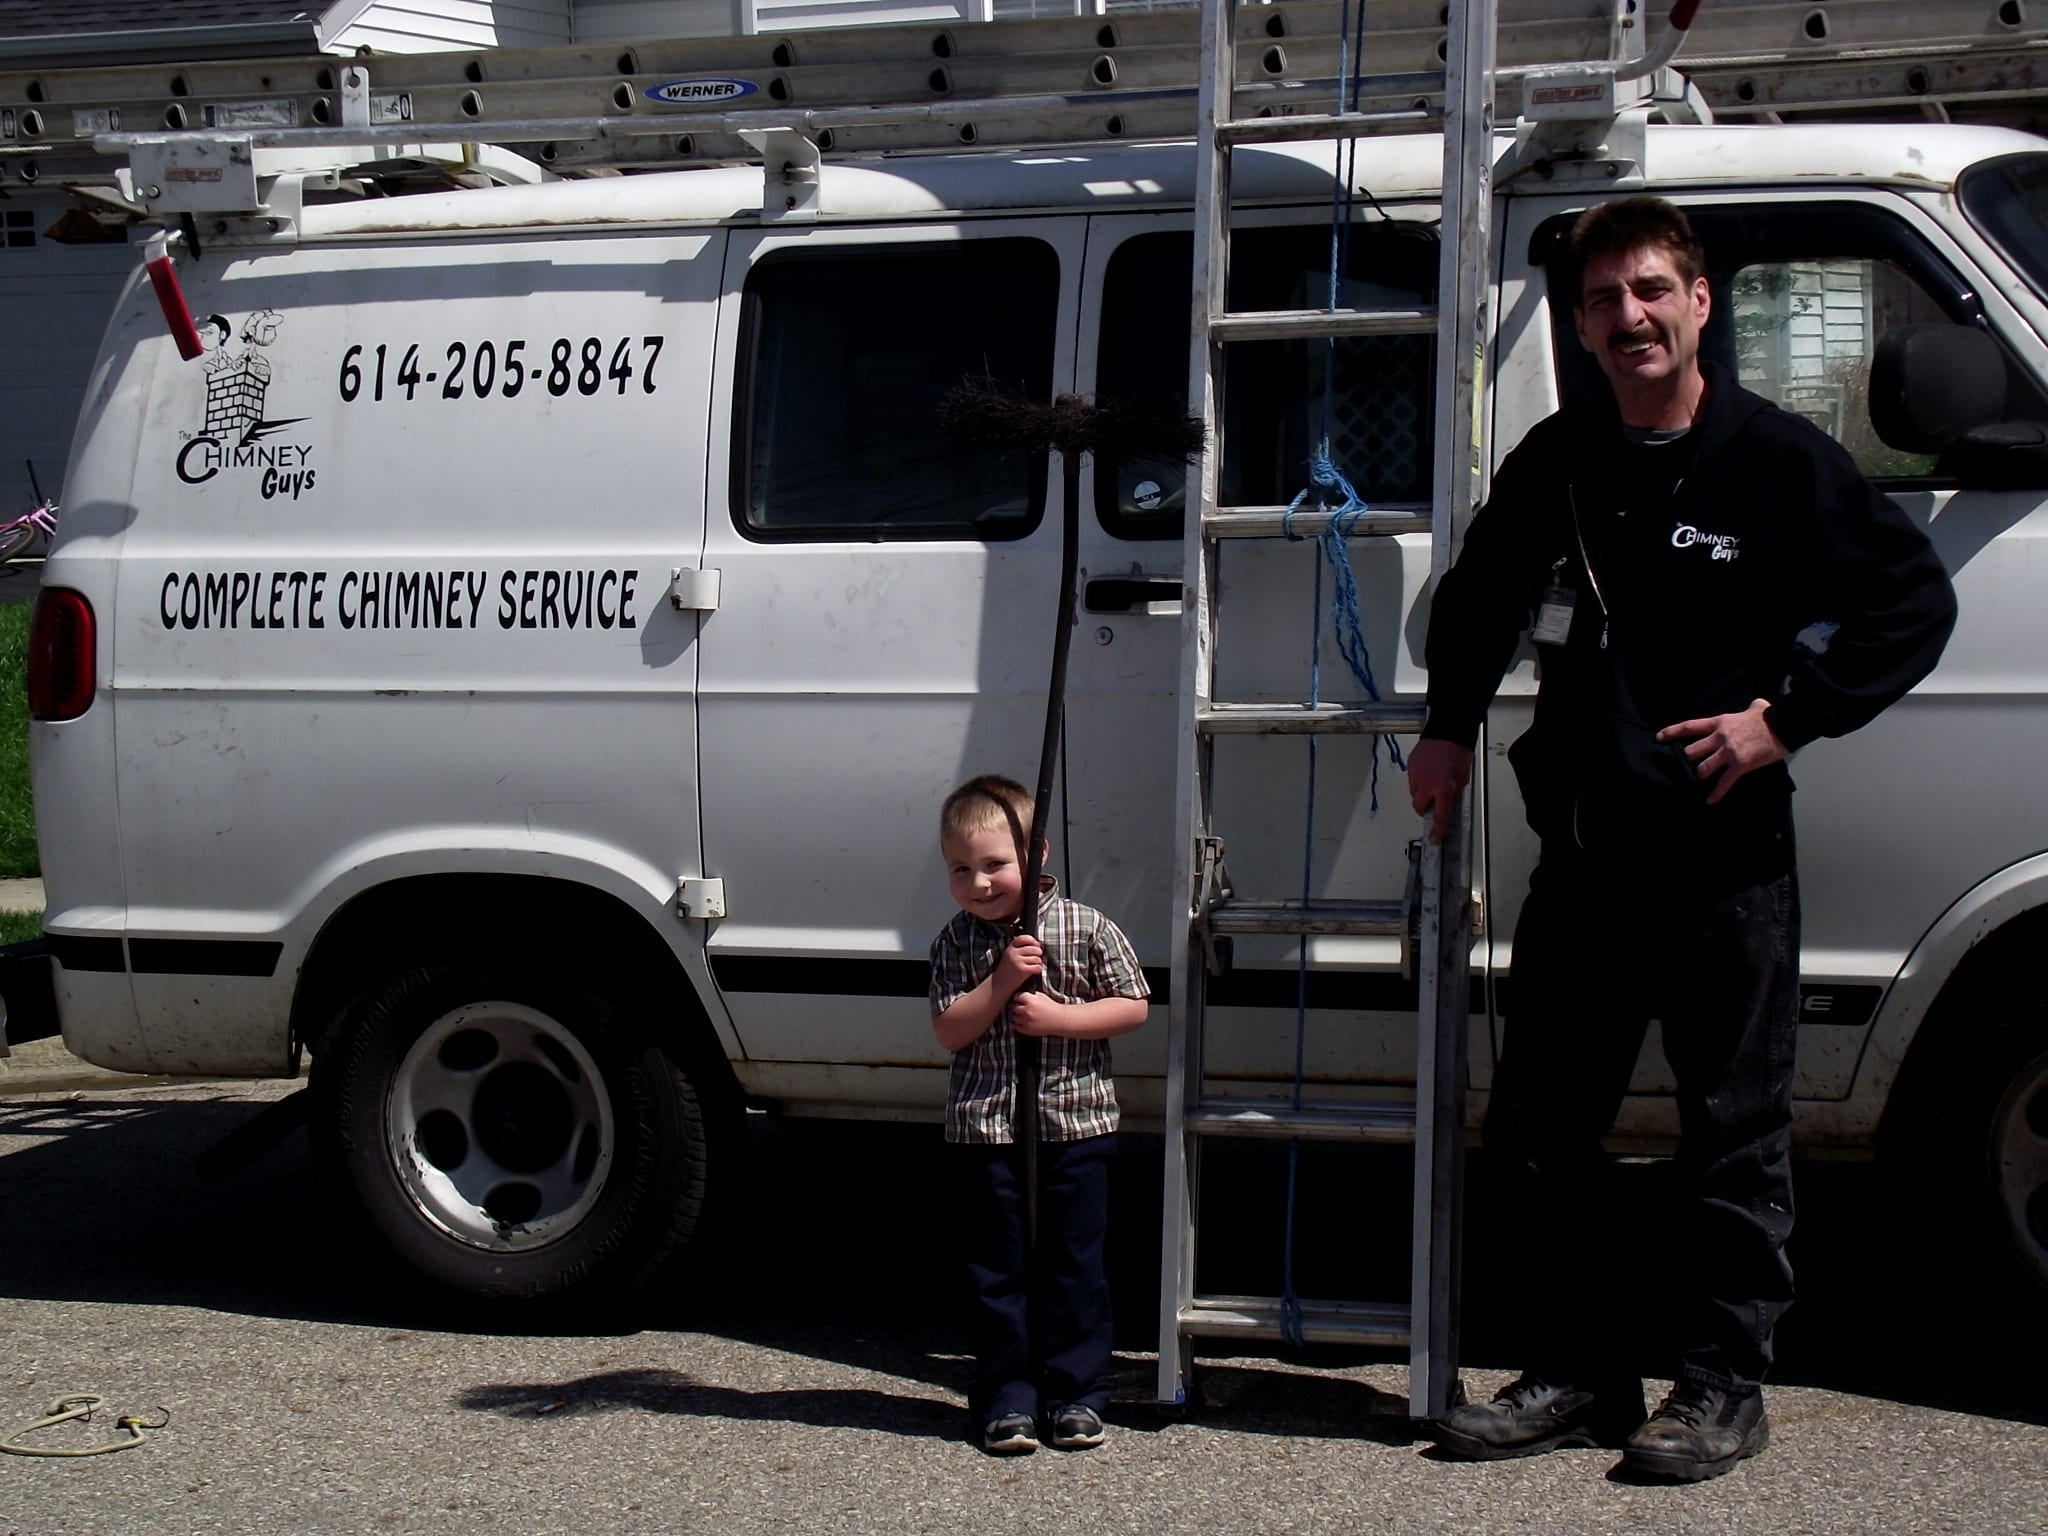 Affordable Quality Chimney Sweep Repair Columbus Oh